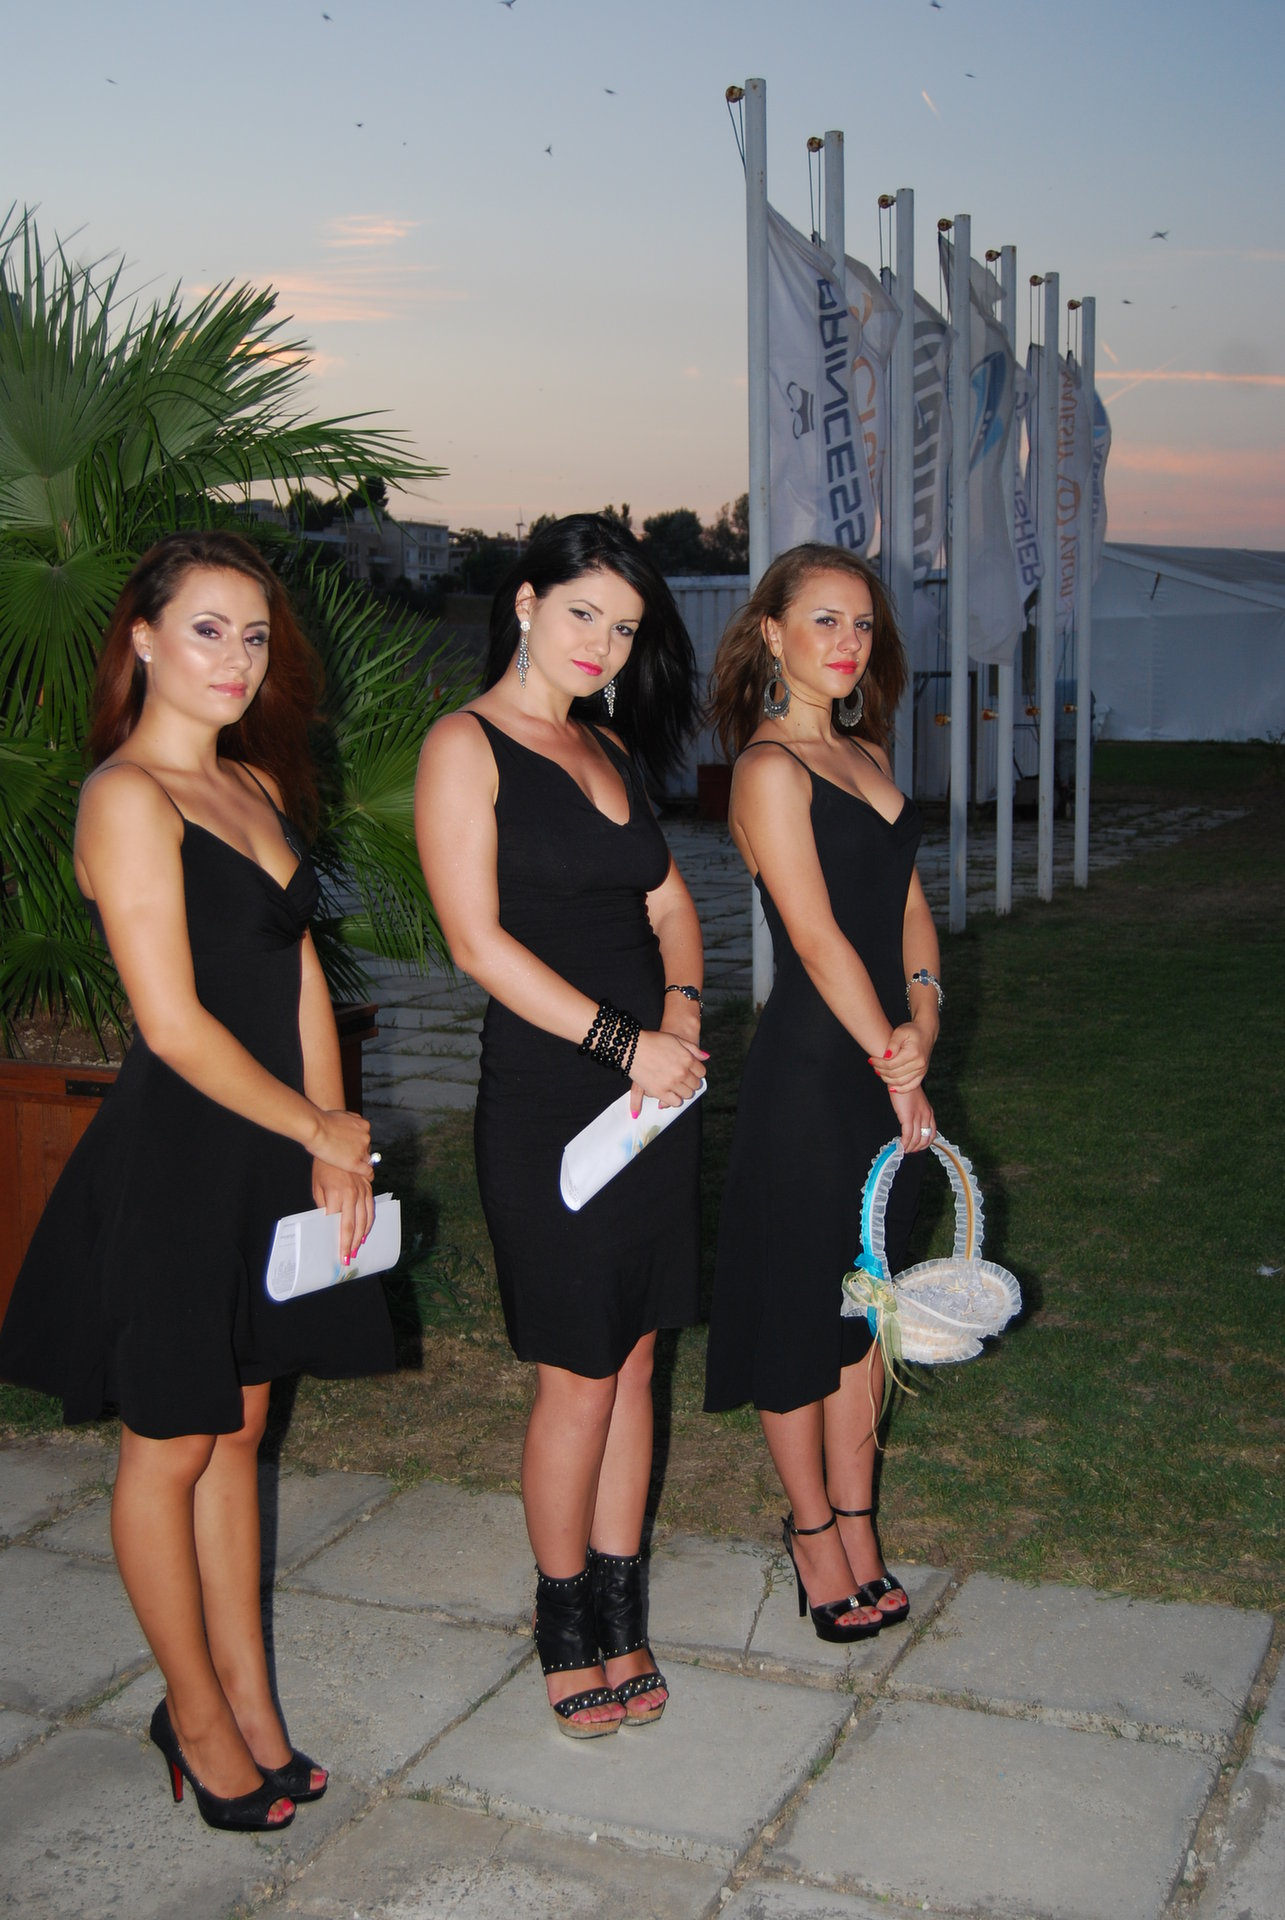 Hostess+Constanta+-+Ana+Yacht+Club+(5).JPG